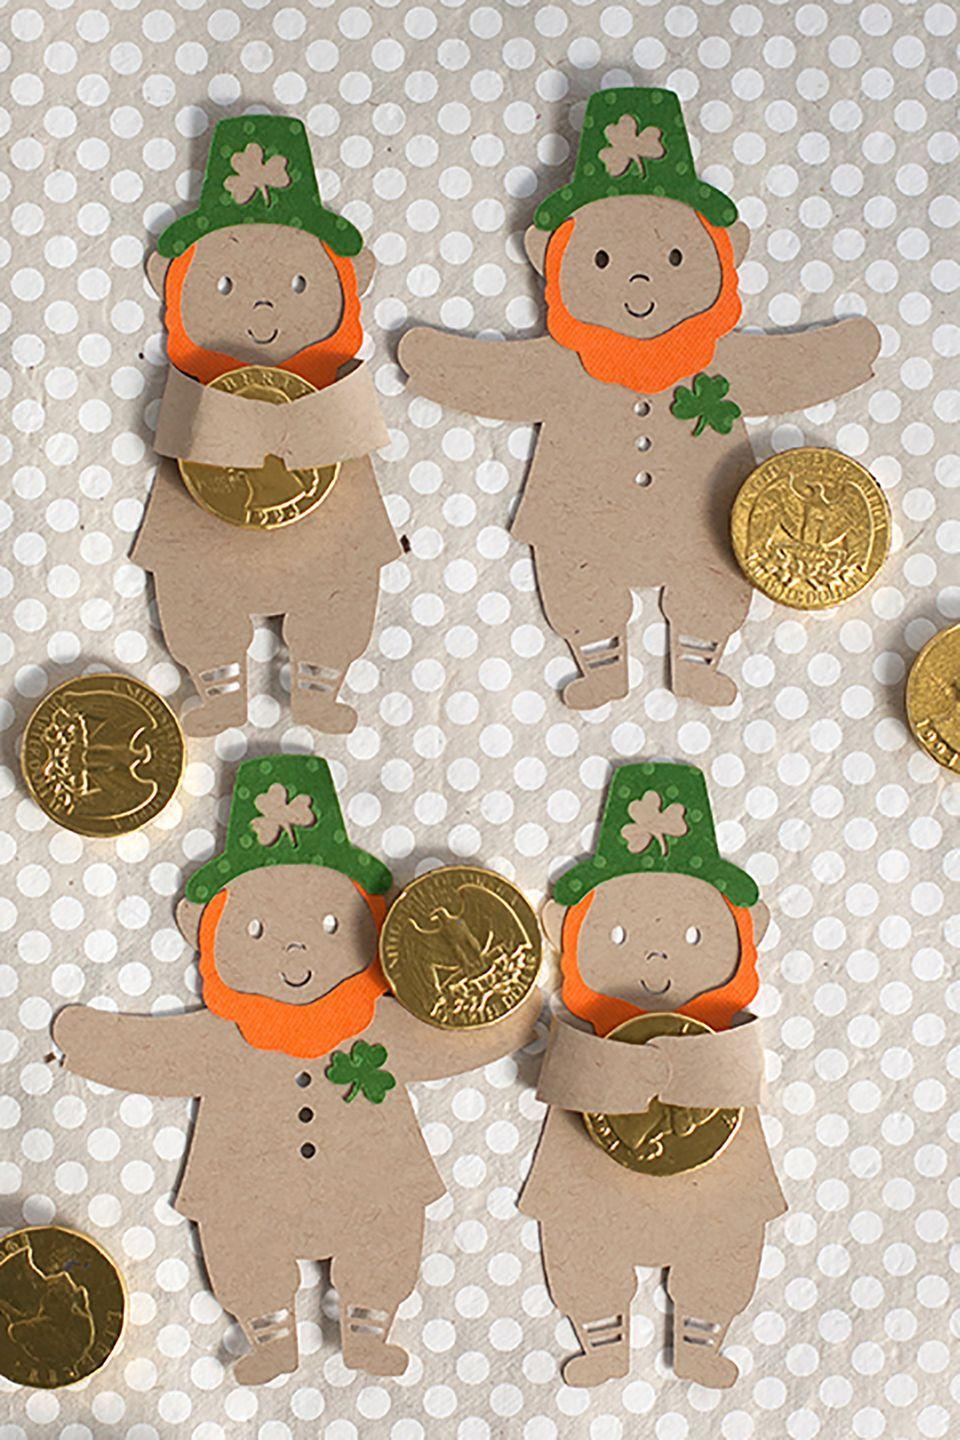 """<p>The kiddos will love making these candy huggers and handing them out to their friends at school.</p><p><strong>Get the tutorial at <a href=""""http://liagriffith.com/st-patricks-day-crafts-leprechaun-candy-hugger/"""" rel=""""nofollow noopener"""" target=""""_blank"""" data-ylk=""""slk:Lia Griffith"""" class=""""link rapid-noclick-resp"""">Lia Griffith</a>.</strong></p>"""